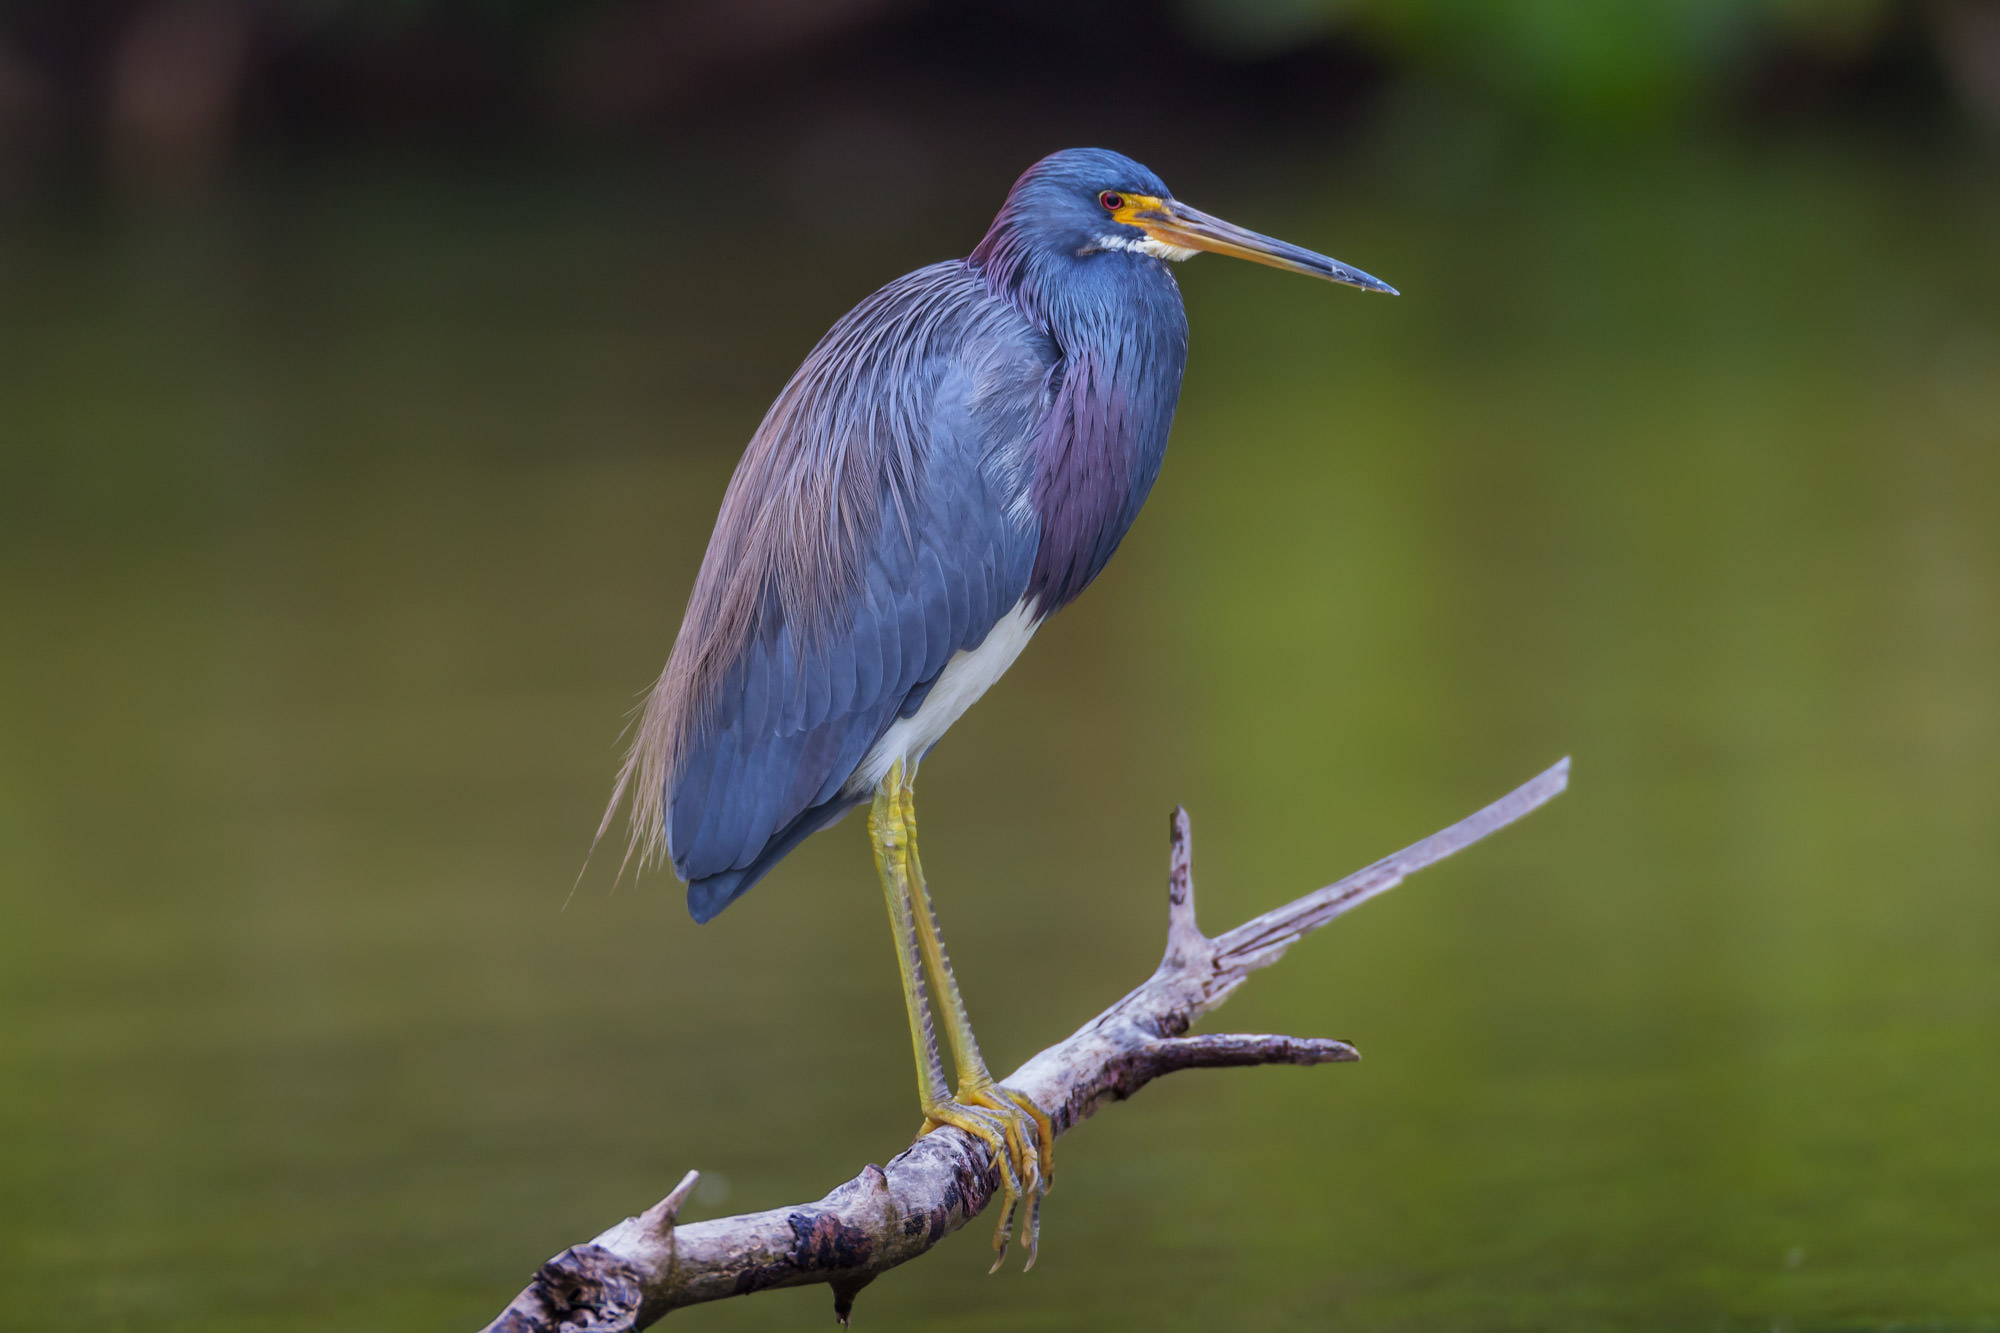 Heron, Tri Colored Heron, Florida, photo